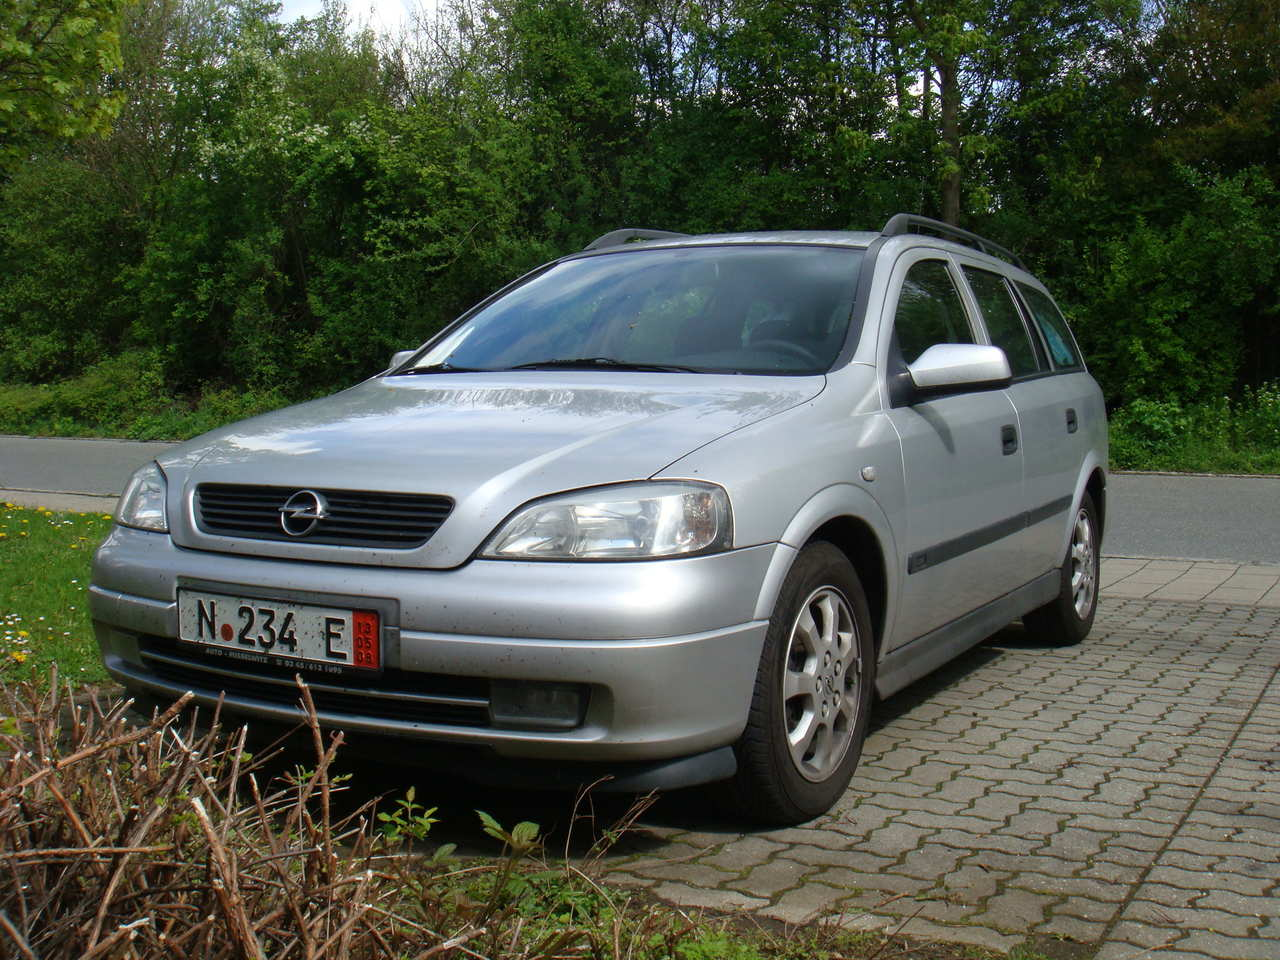 2001 opel astra photos 2 0 diesel ff manual for sale rh cars directory net opel astra g 2001 manual opel astra 2001 manual guide